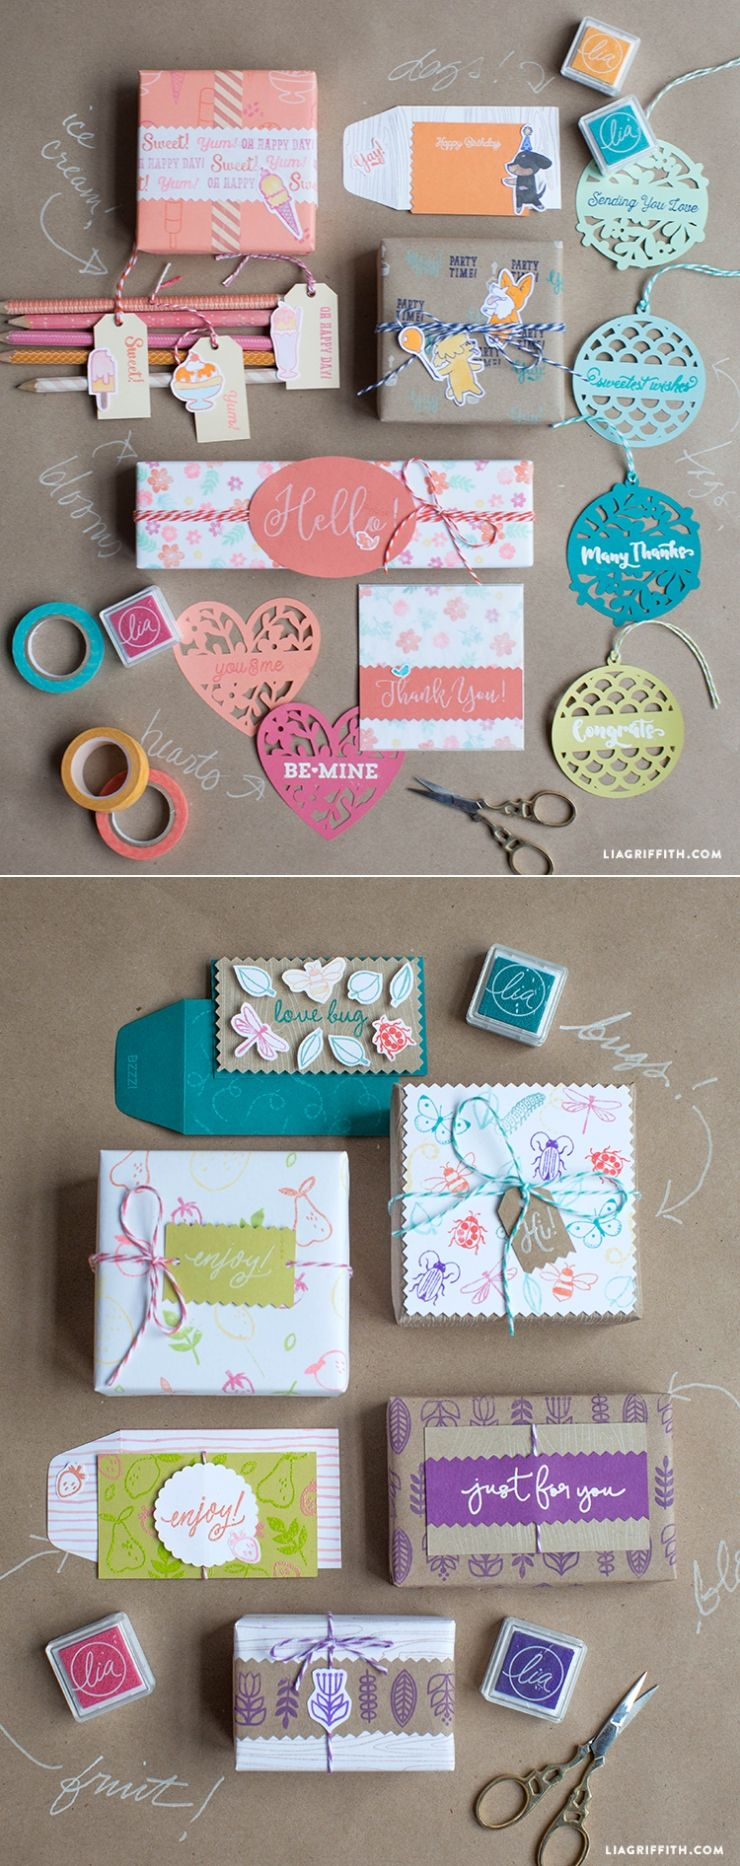 DIY Gift Wrap Customized with Stamps | Pinterest | Ideen für ...